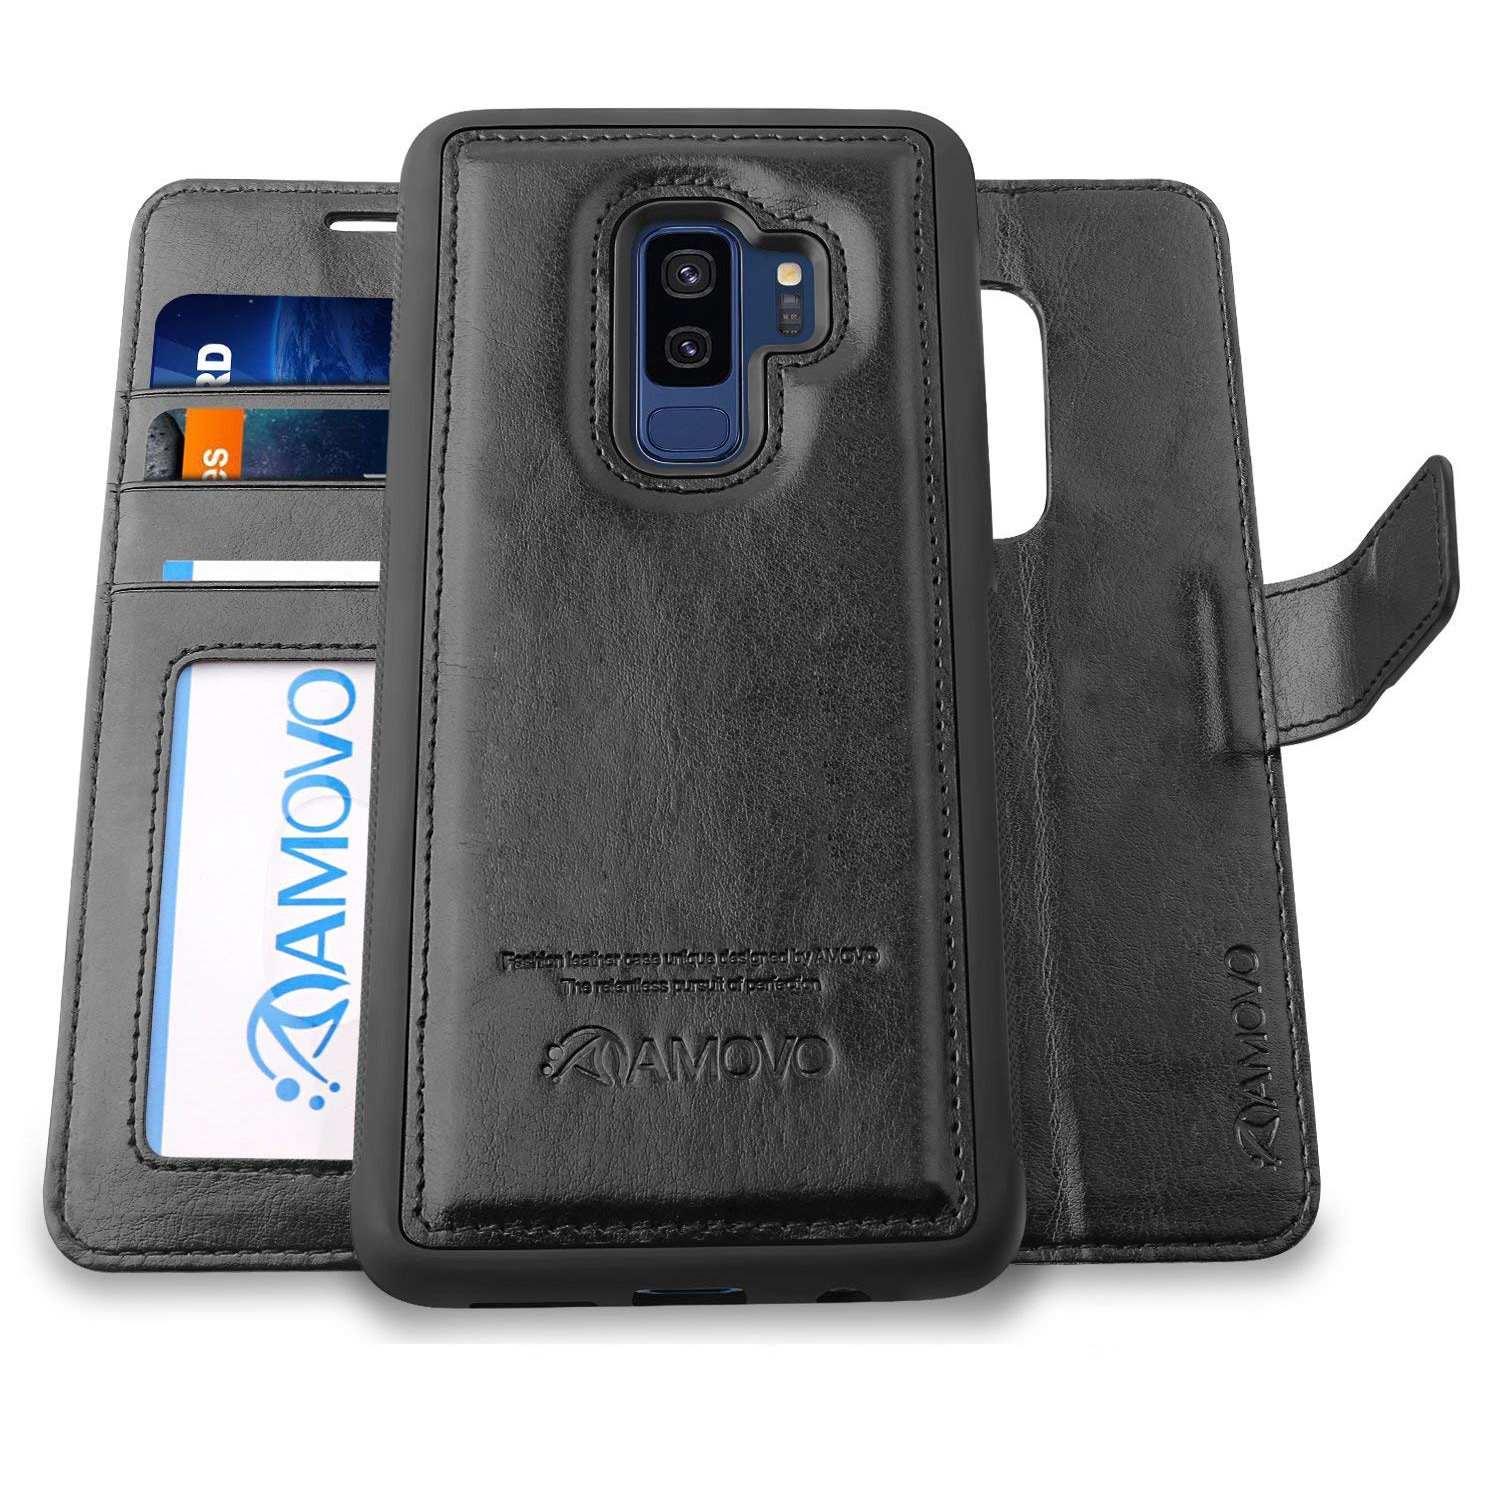 AMOVO Case for Galaxy S9 Plus [2 in 1], Samsung Galaxy S9 Plus Wallet Case [Detachable Wallet Folio] [Premium Vegan Leather] Samsung S9 Plus Flip Case Cover with Gift Box Package (Black, S9+) by Amovo (Image #1)